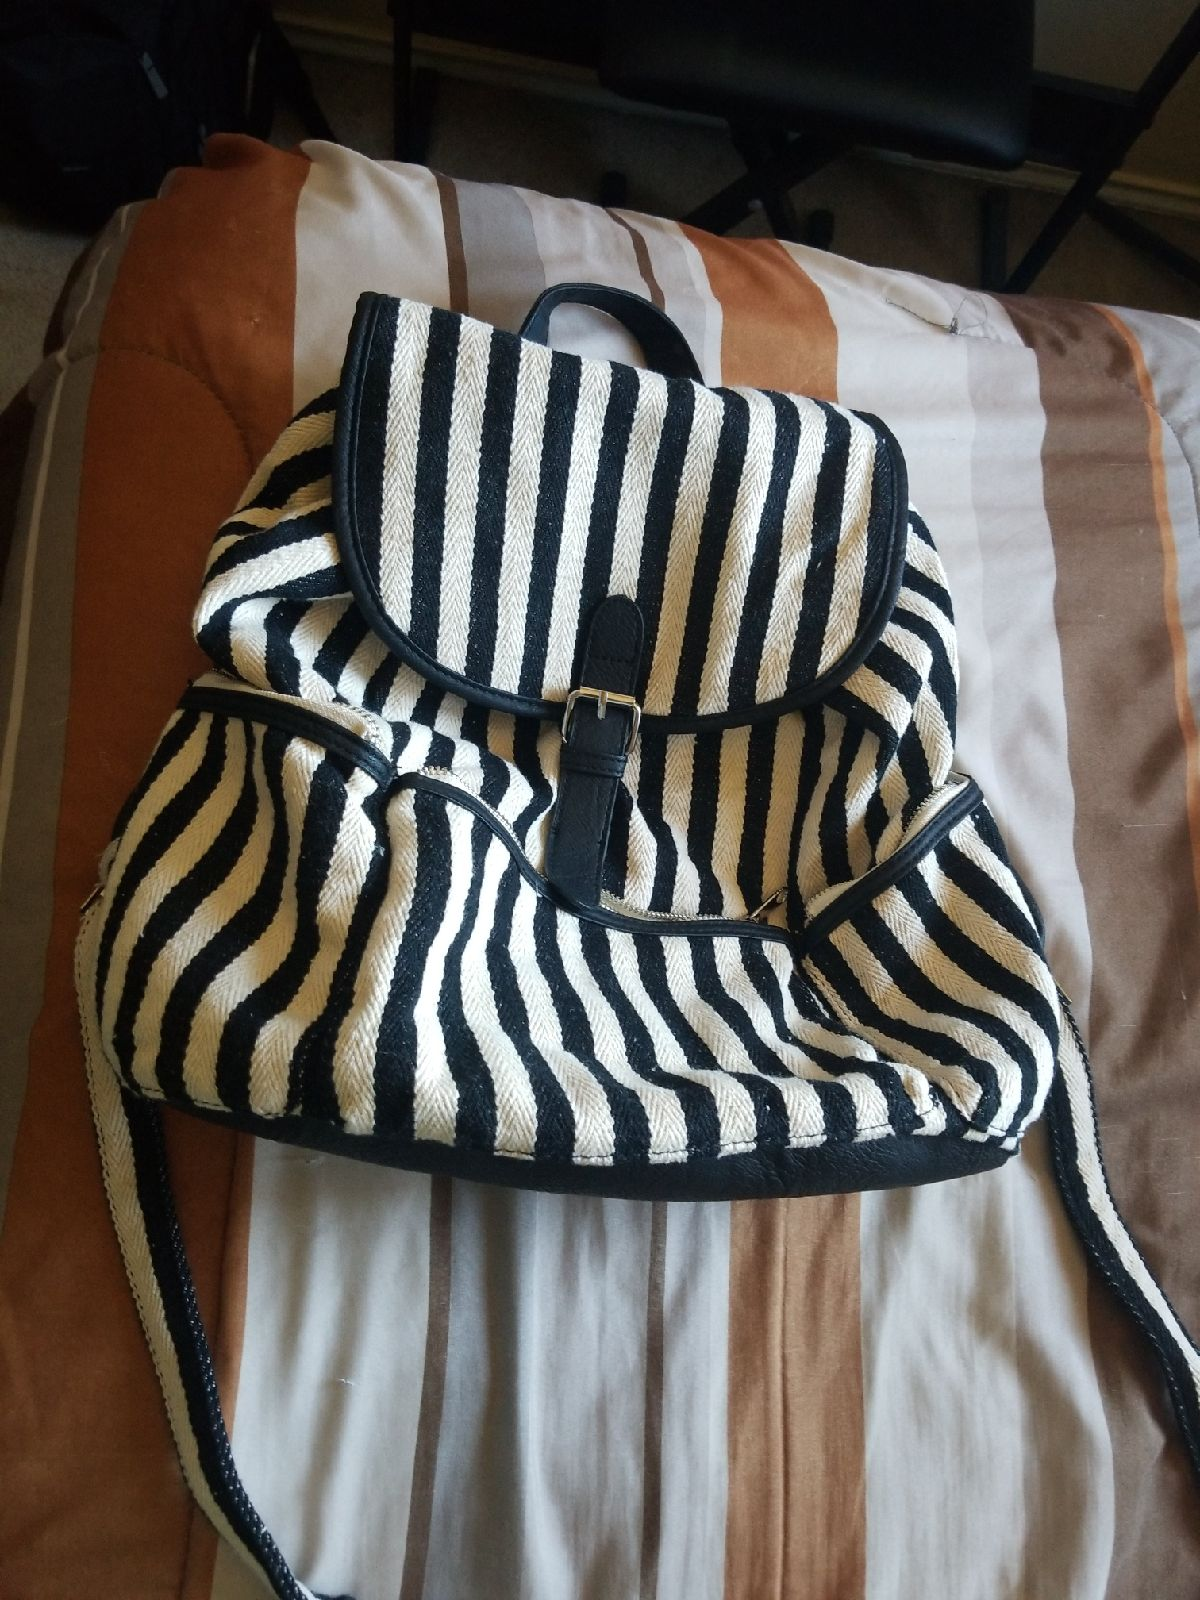 Candie's Stripped Backpack for women